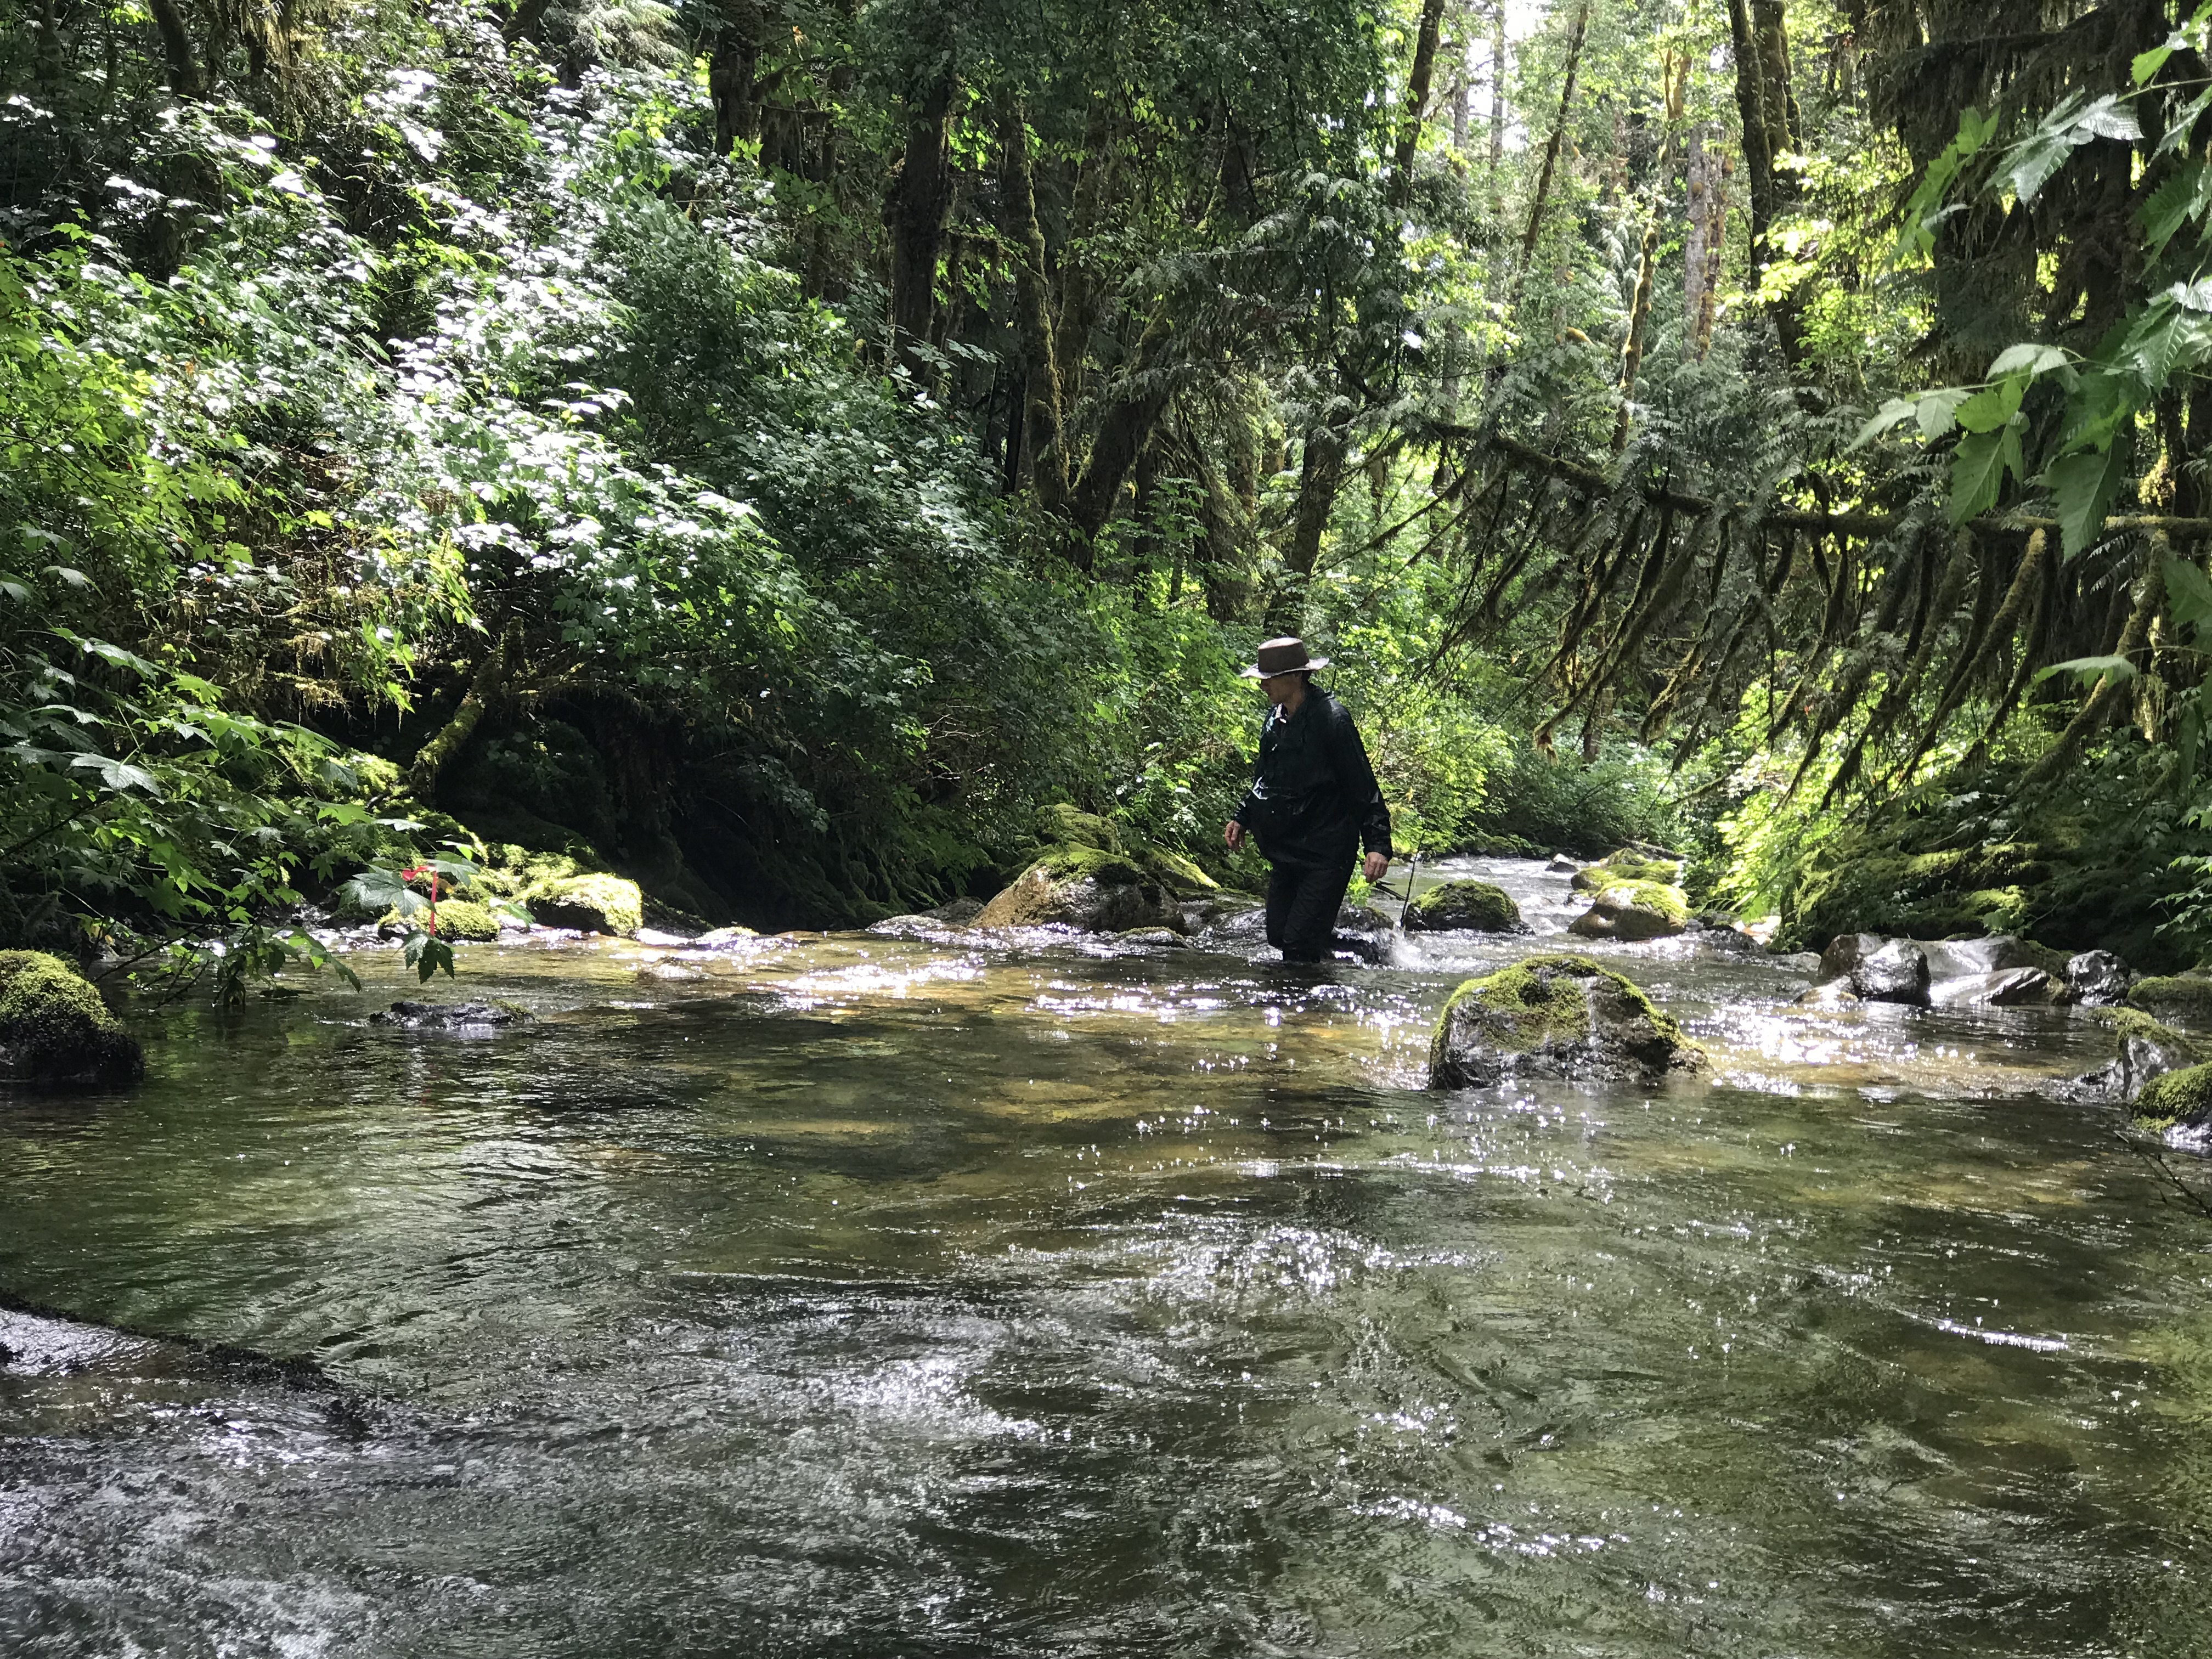 Above: Skagit Land Trust volunteer Pete Haas conducts salmon spawning surveys along White Creek at the White Creek Conservation Area in June of 2018. Photograph credit: Skagit Land Trust staff.